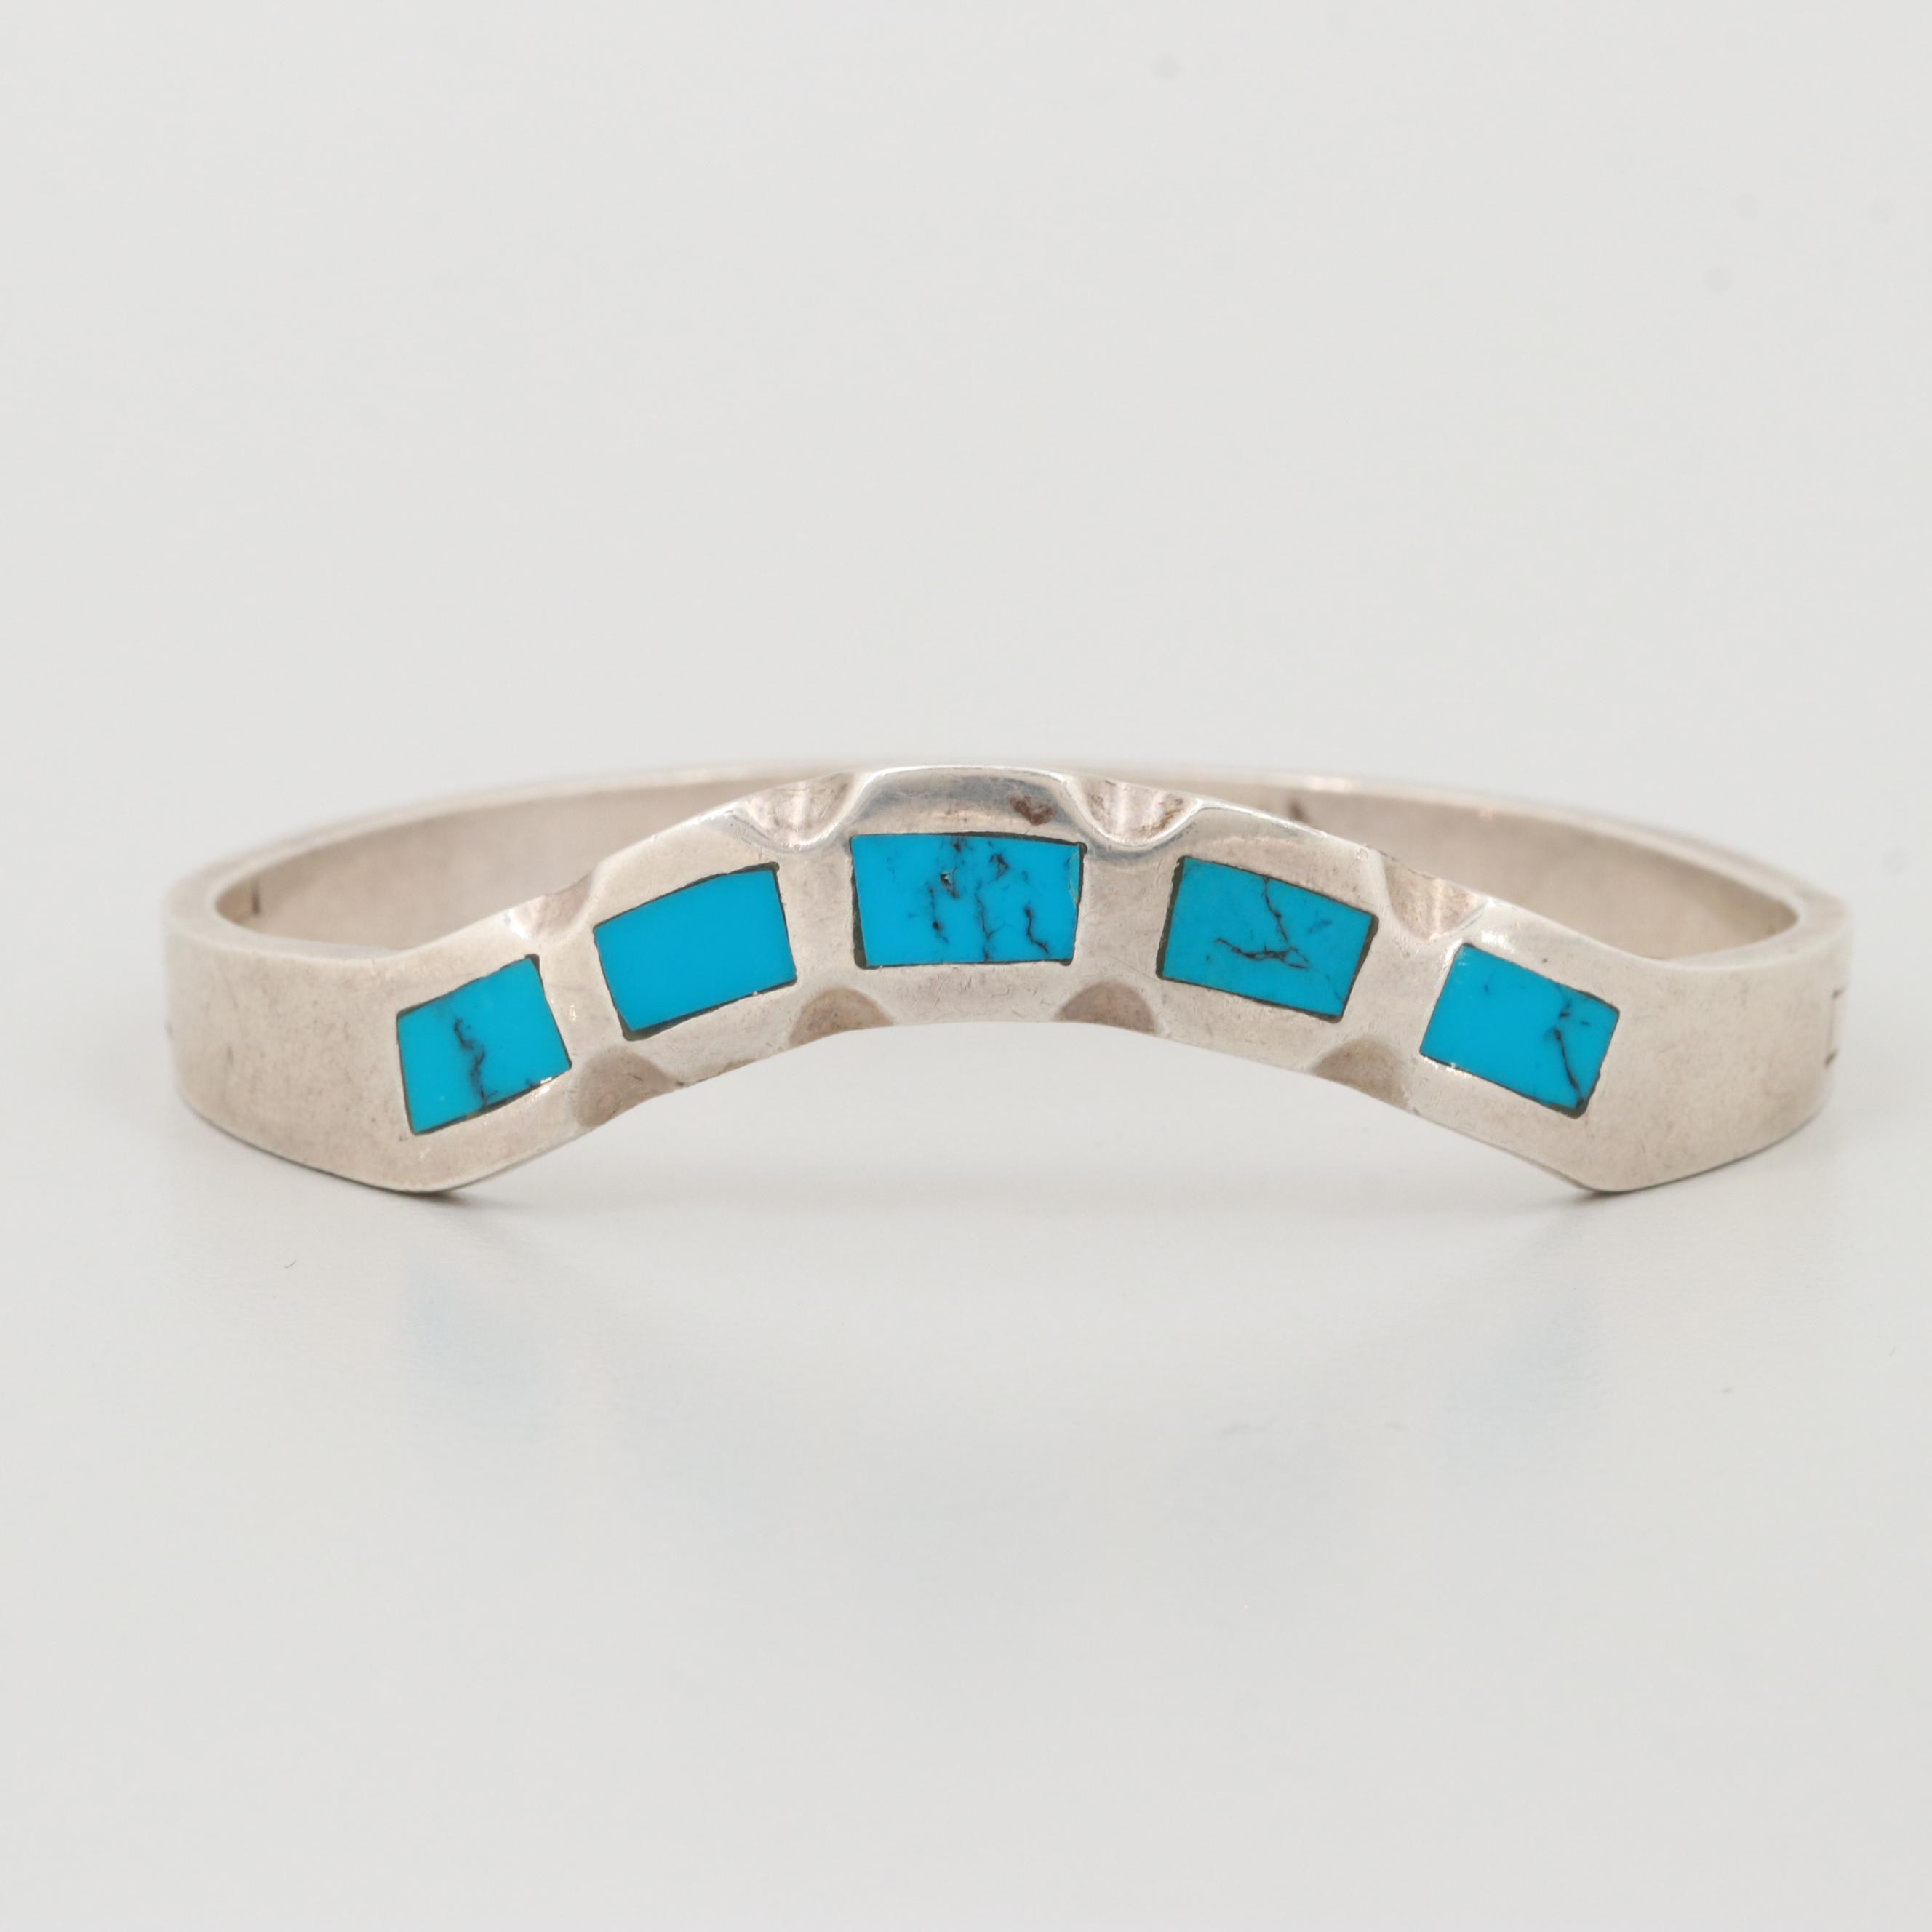 Mexican Sterling Silver Turquoise Bangle Bracelet